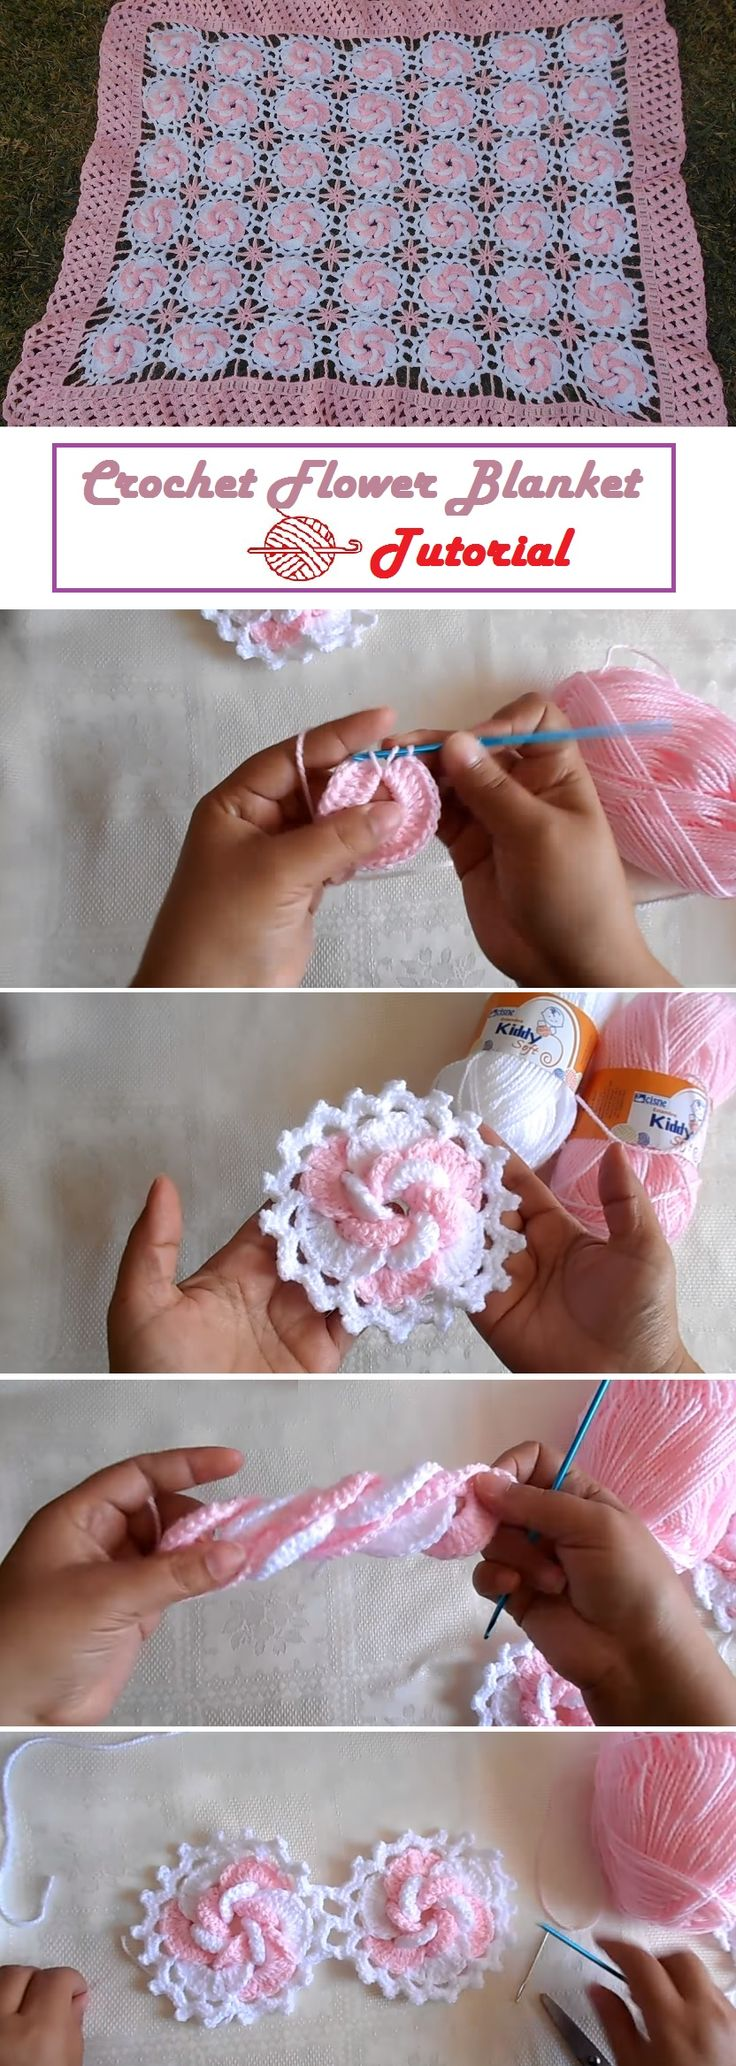 From Flowers to a Beautiful Crochet Blanket